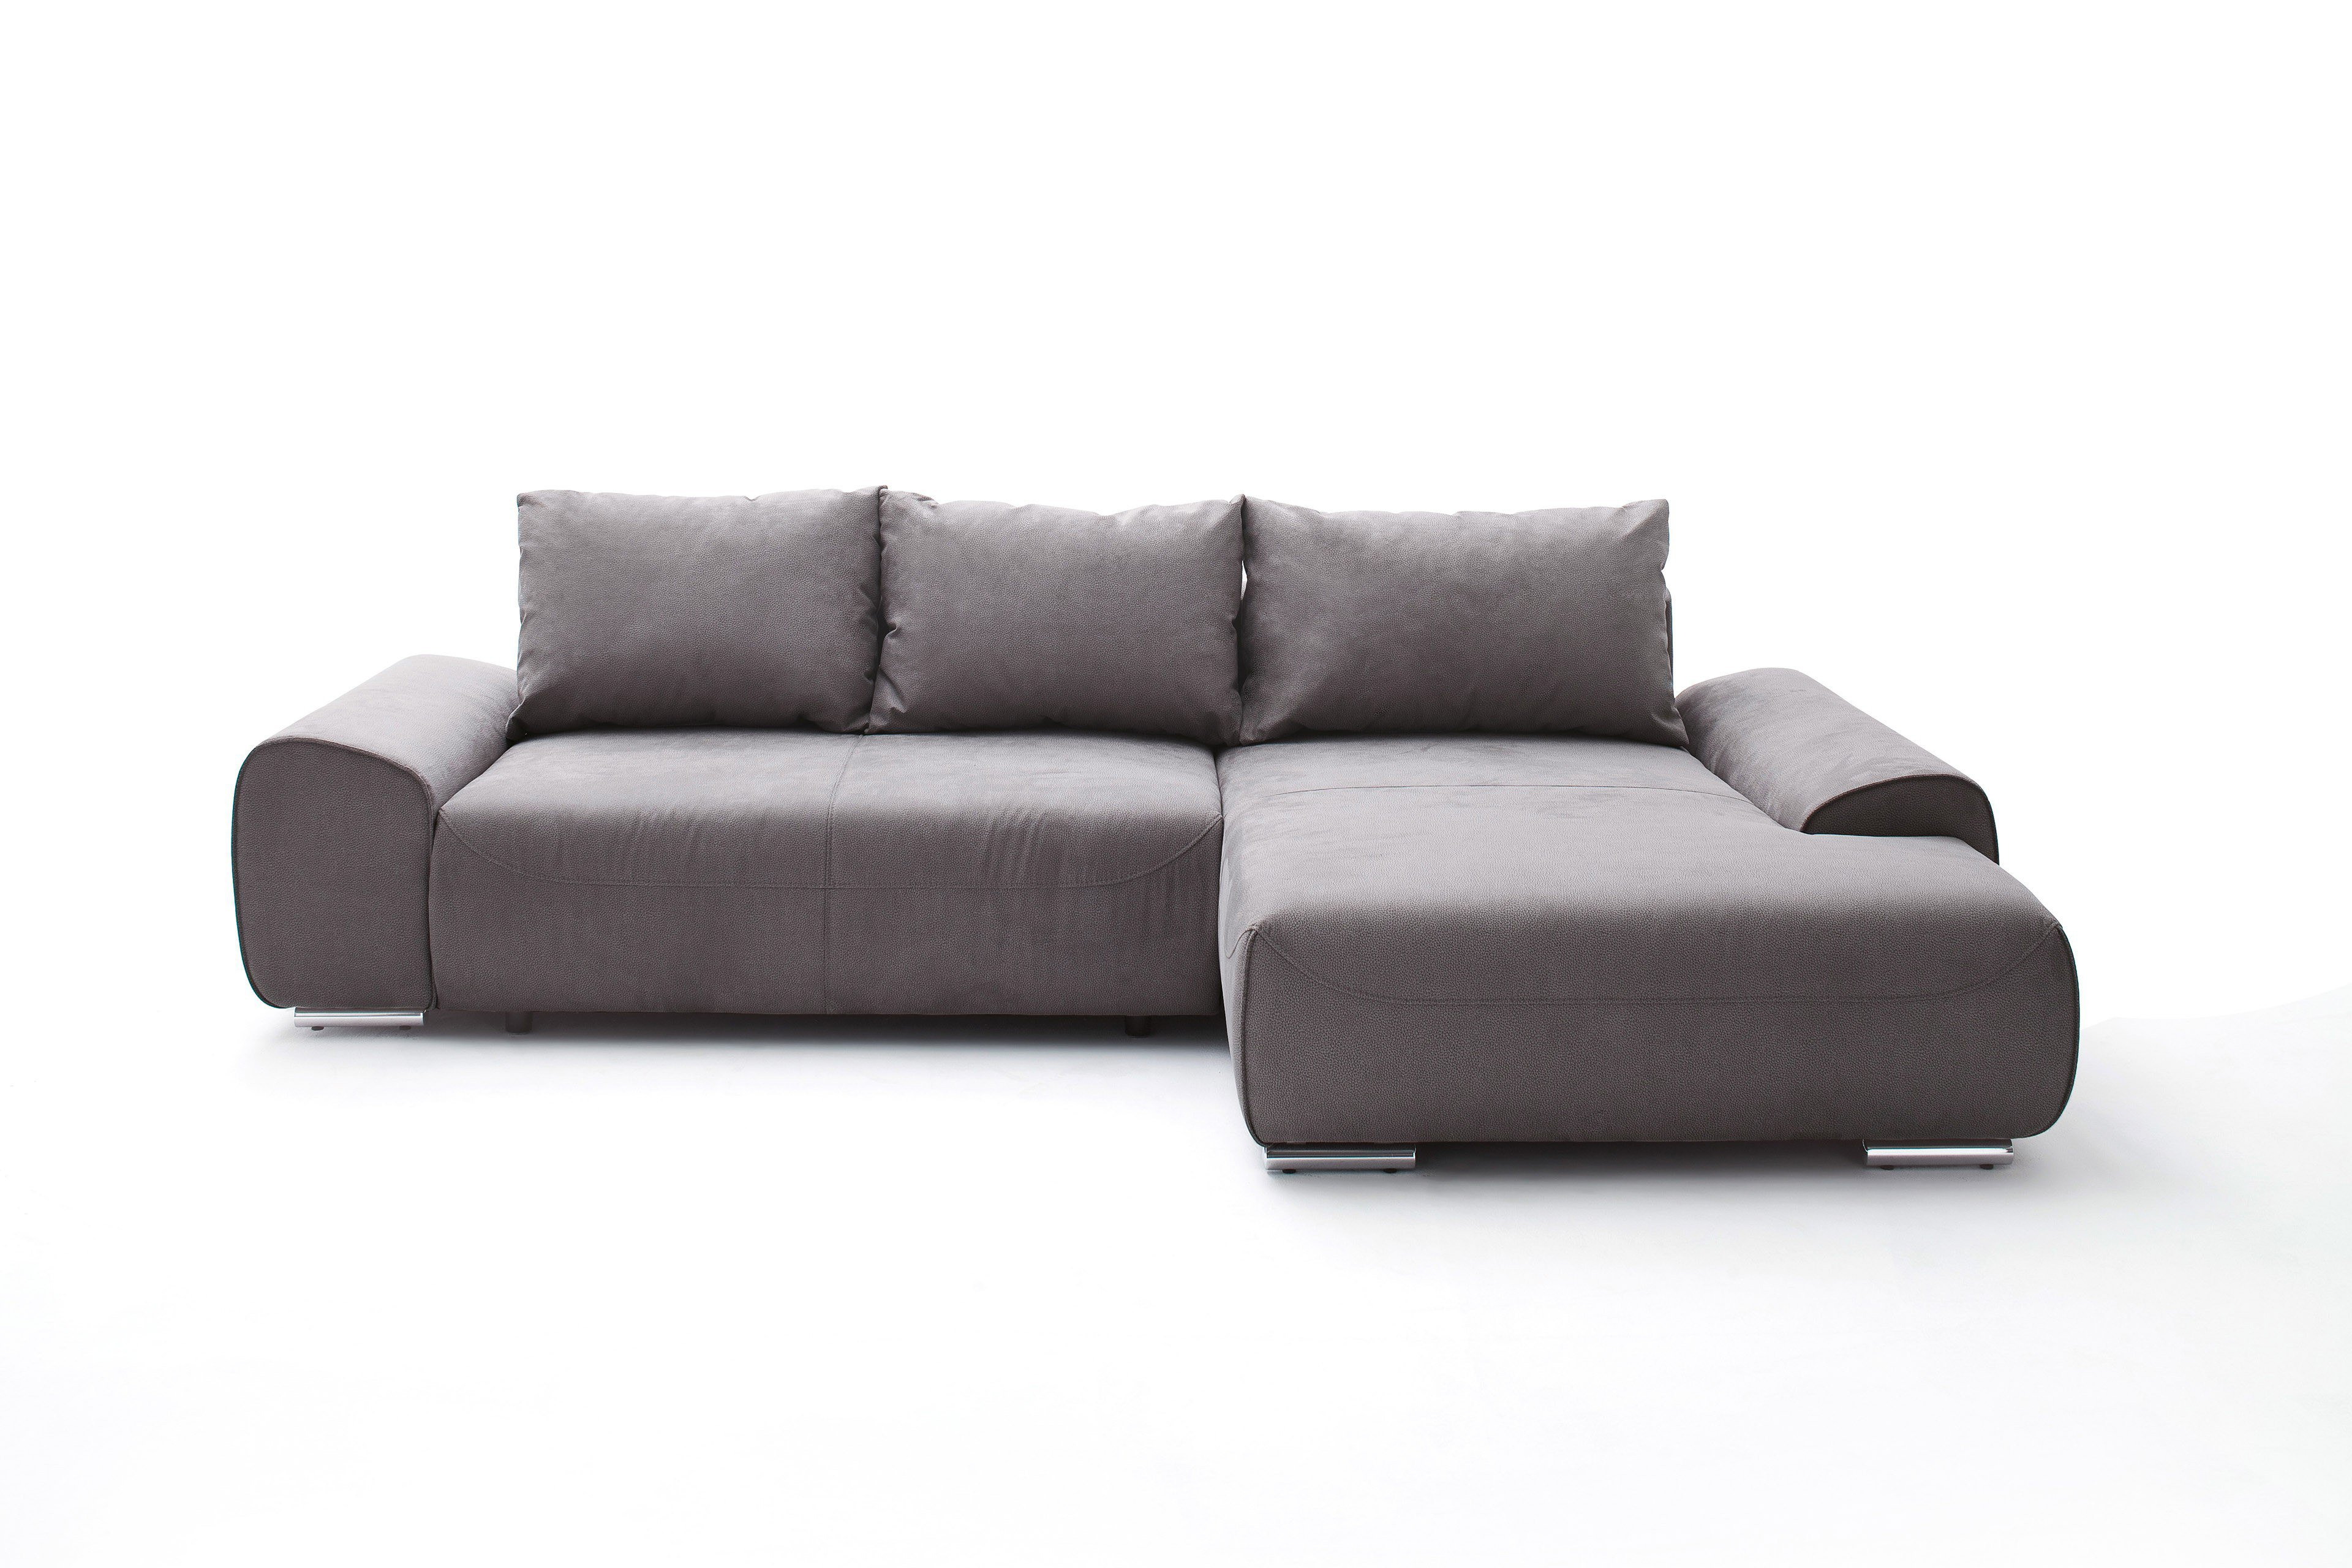 ecksofa auf raten best rolf benz sofa gebraucht berlin with ecksofa auf raten affordable sofa. Black Bedroom Furniture Sets. Home Design Ideas